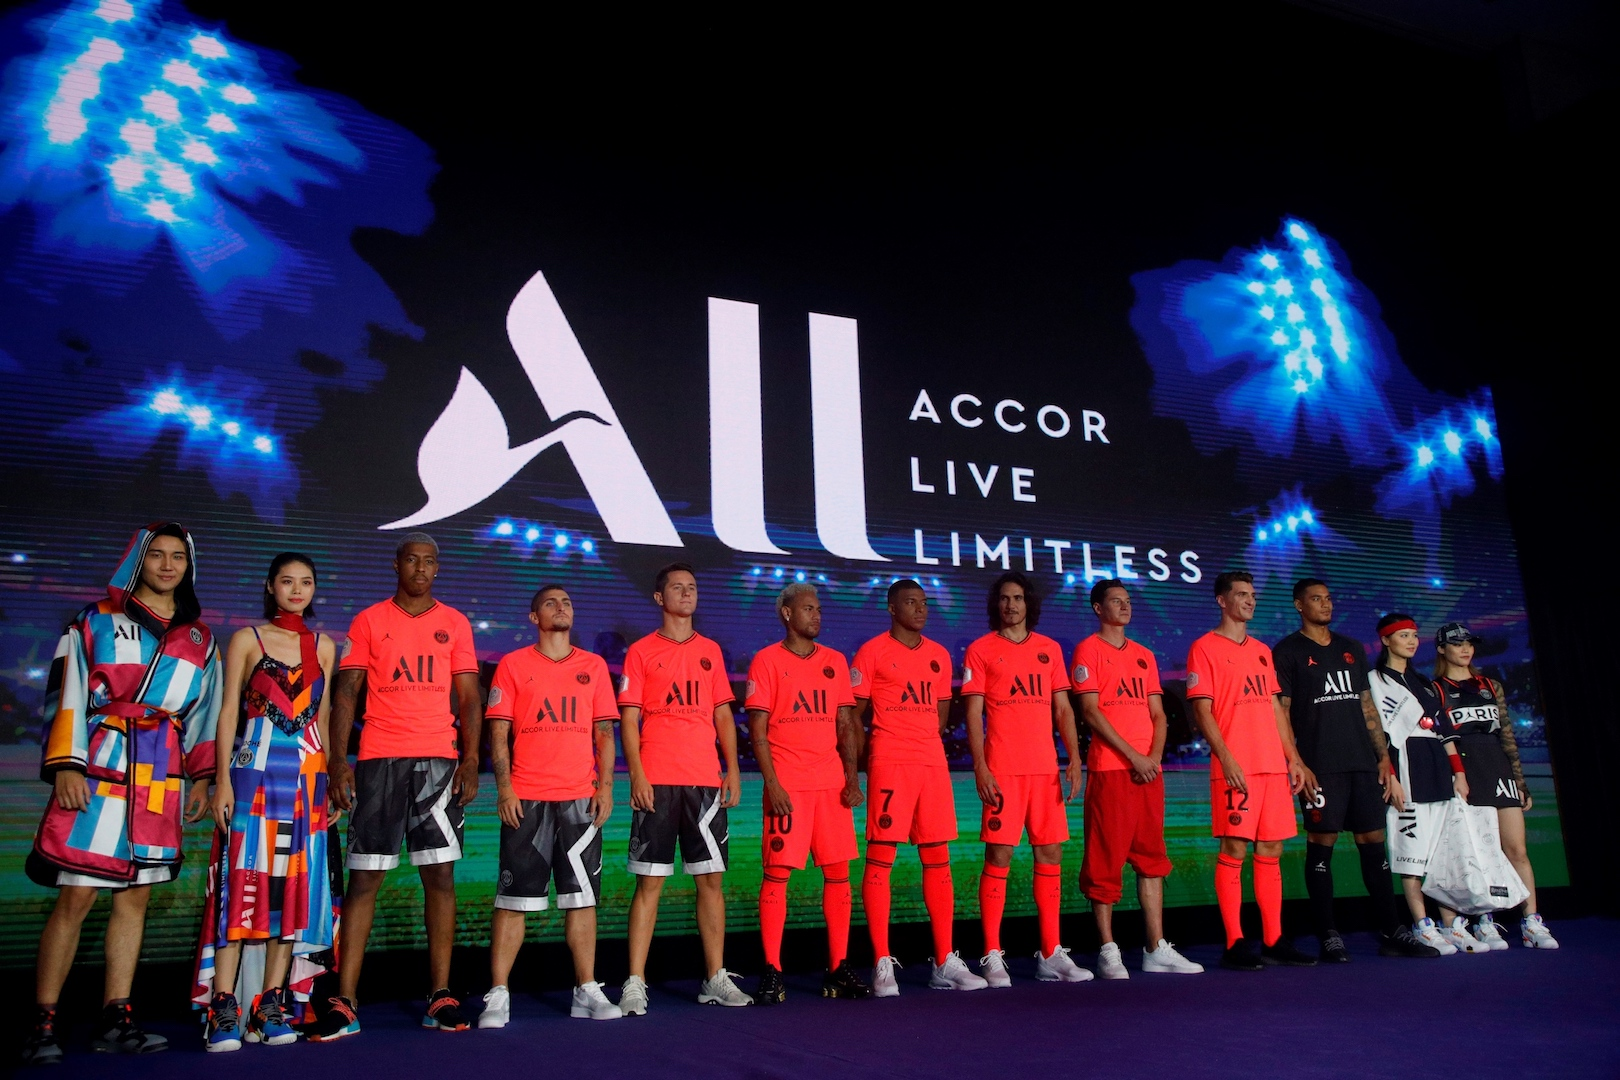 Accor Live Limitless - PSG at Raffles Shenzhen